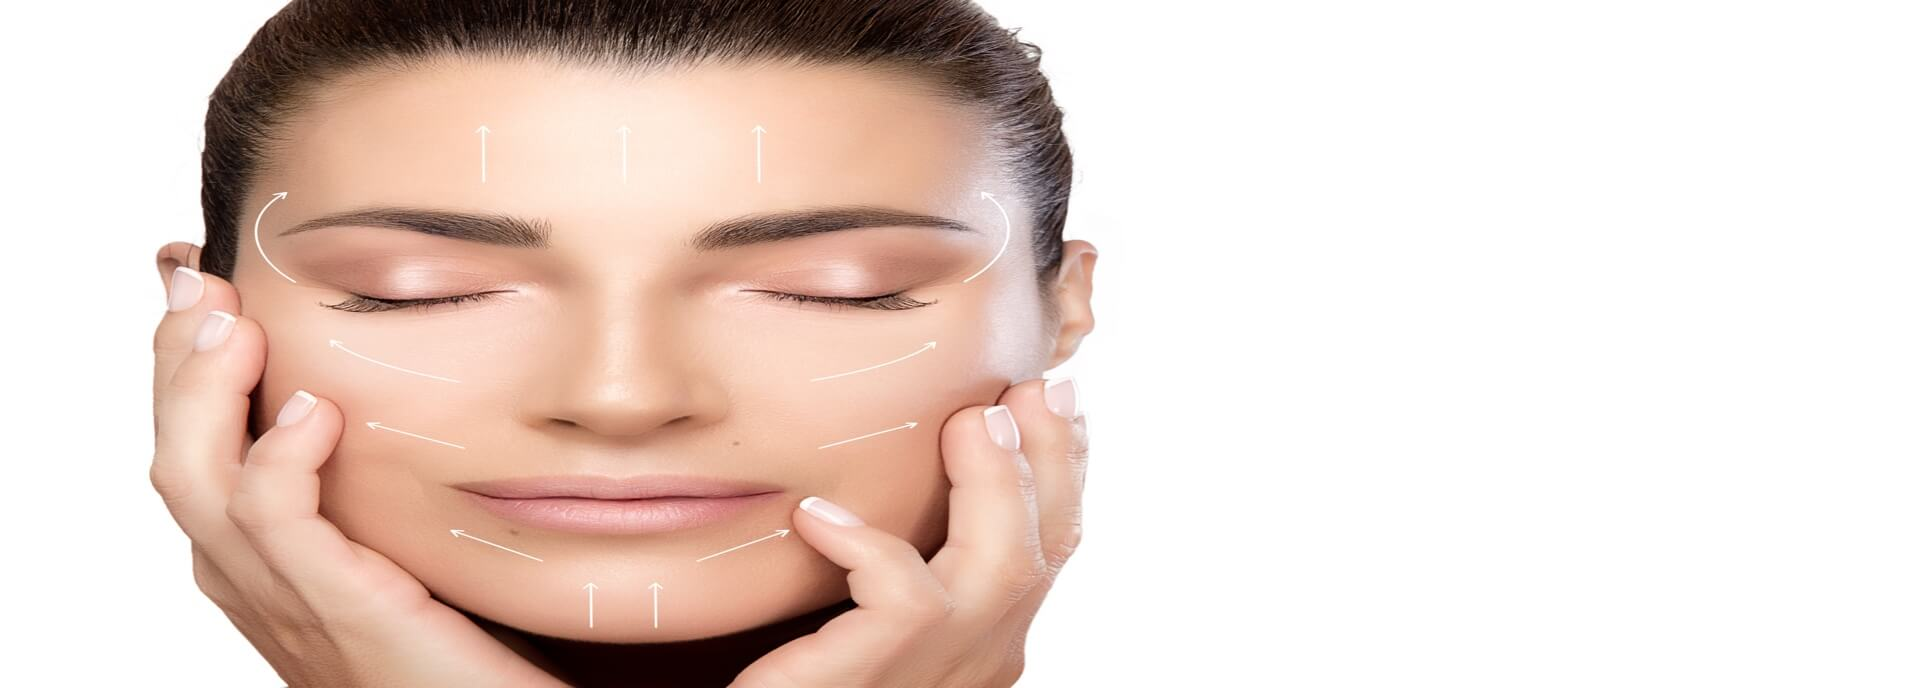 Botox facial reduce vancouver wrinkle